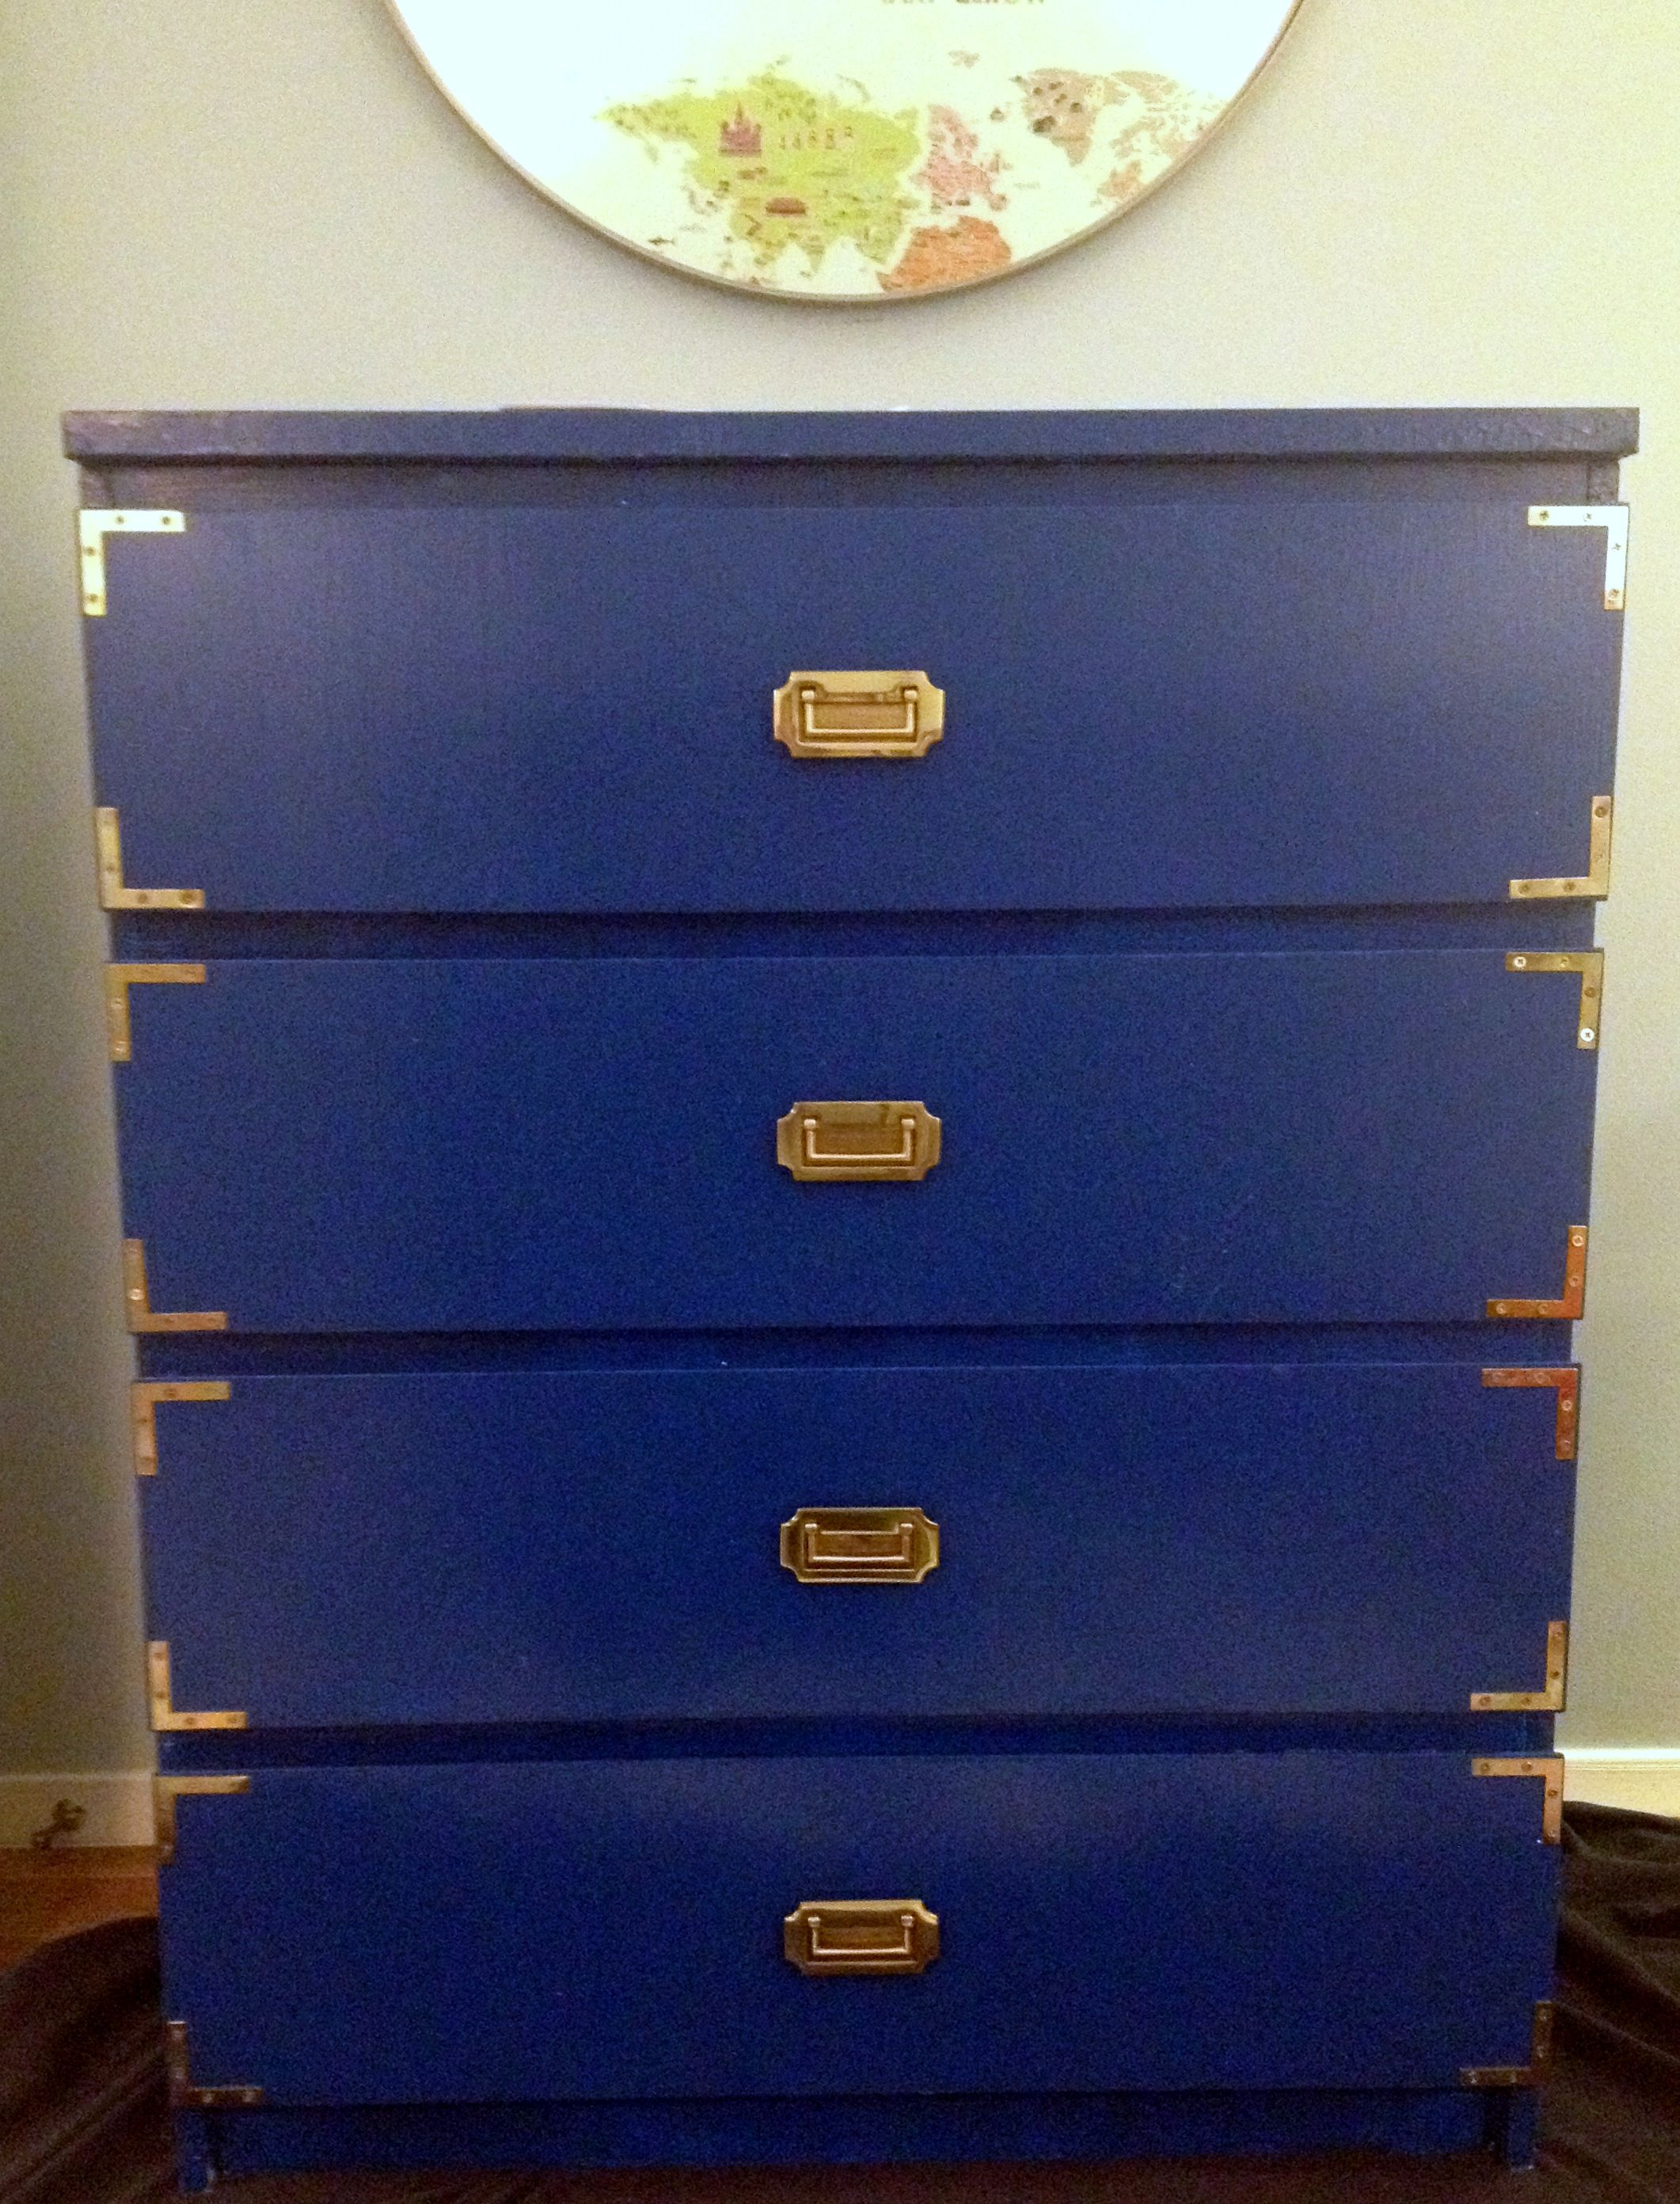 Campaign Dresser I Love The Look Of This Dresser The Navy And